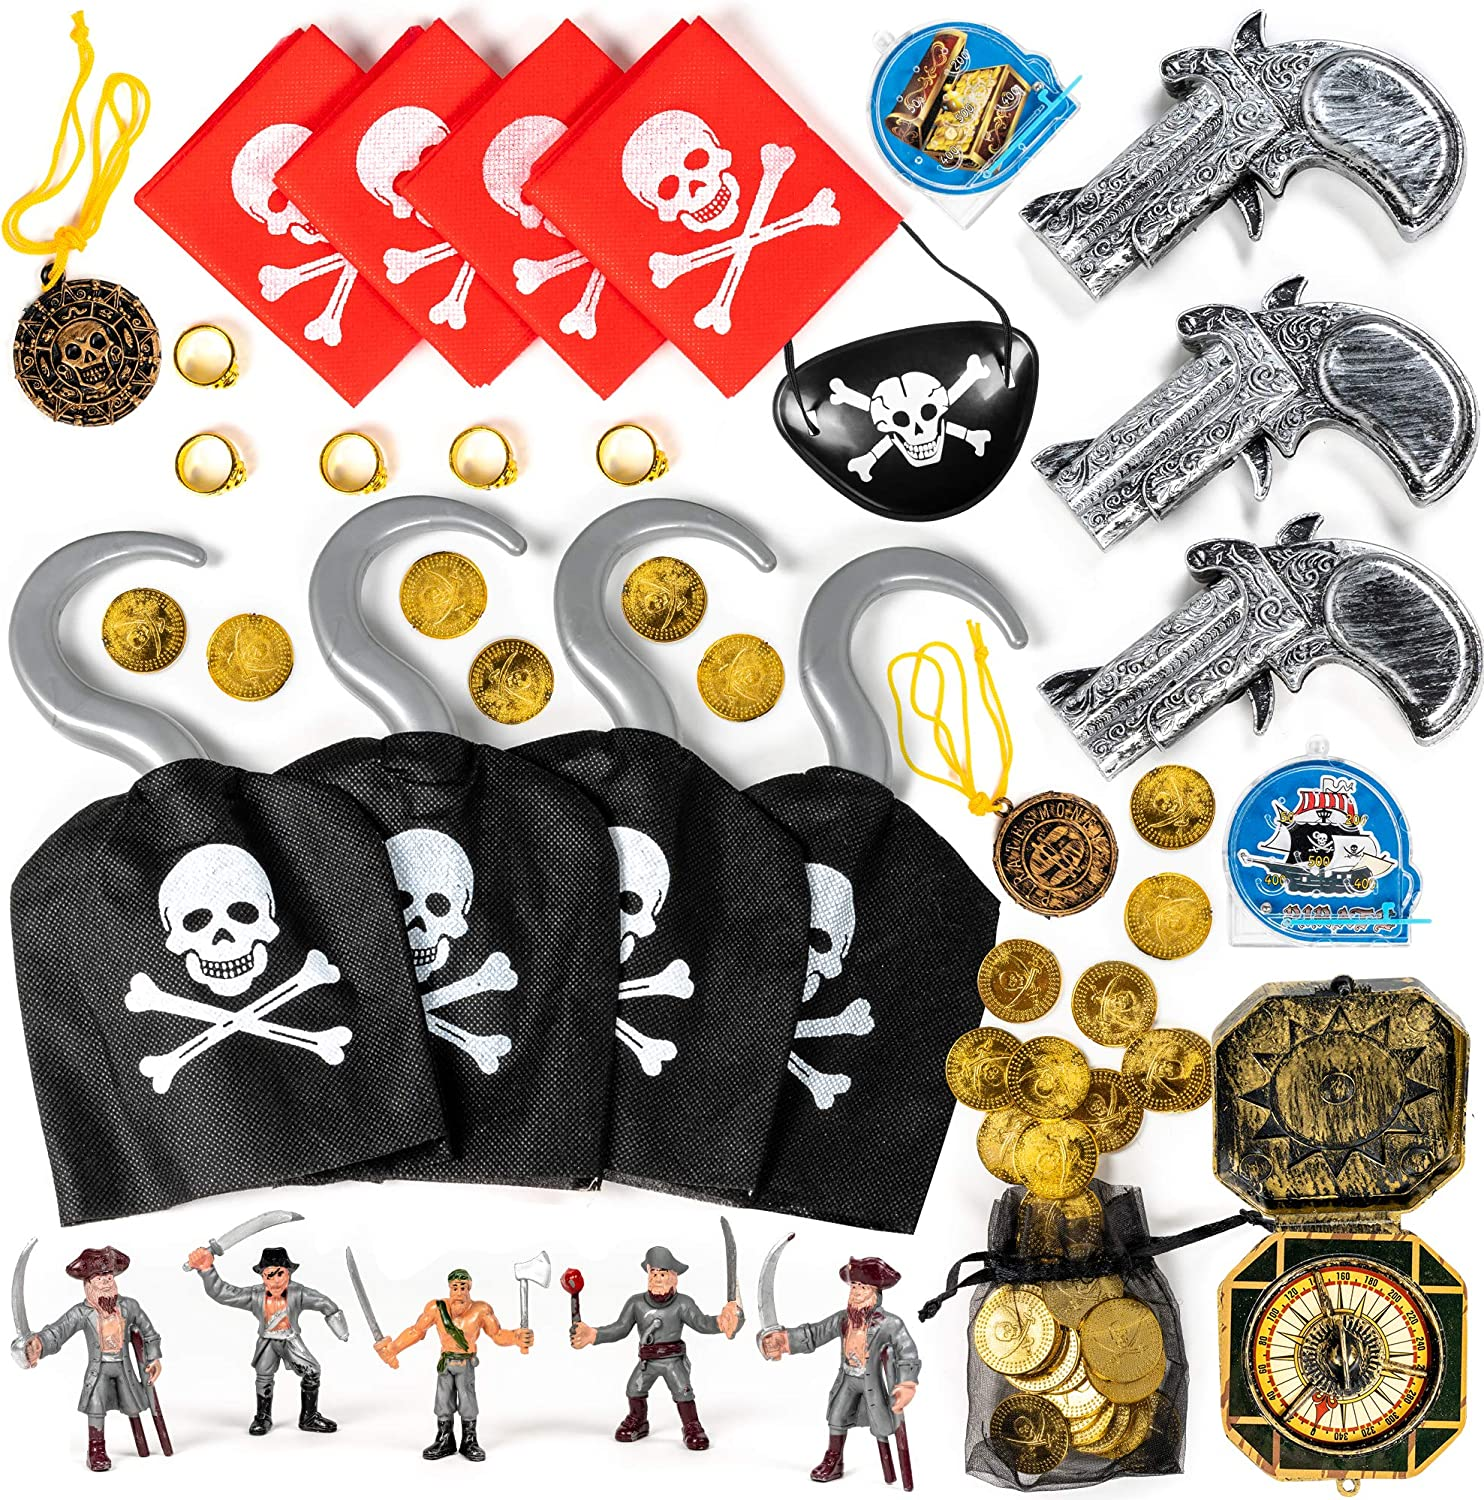 10 boys,girls party bag toys.Buy 2 get 1 free.loot favours,pass the parcel game